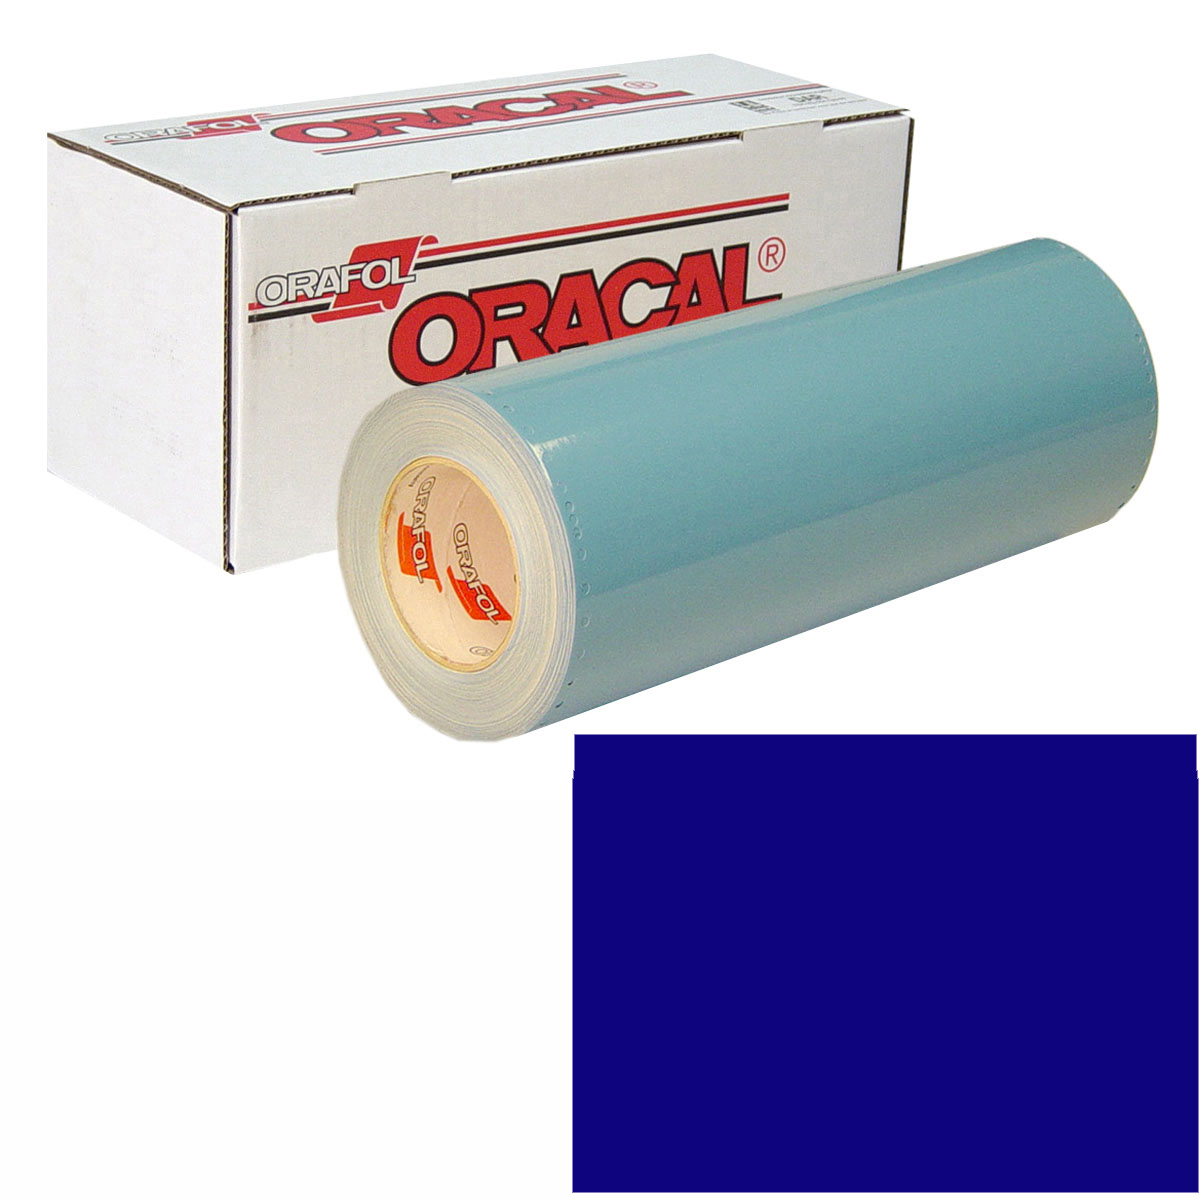 ORACAL 751 Unp 48in X 50yd 049 King Blue